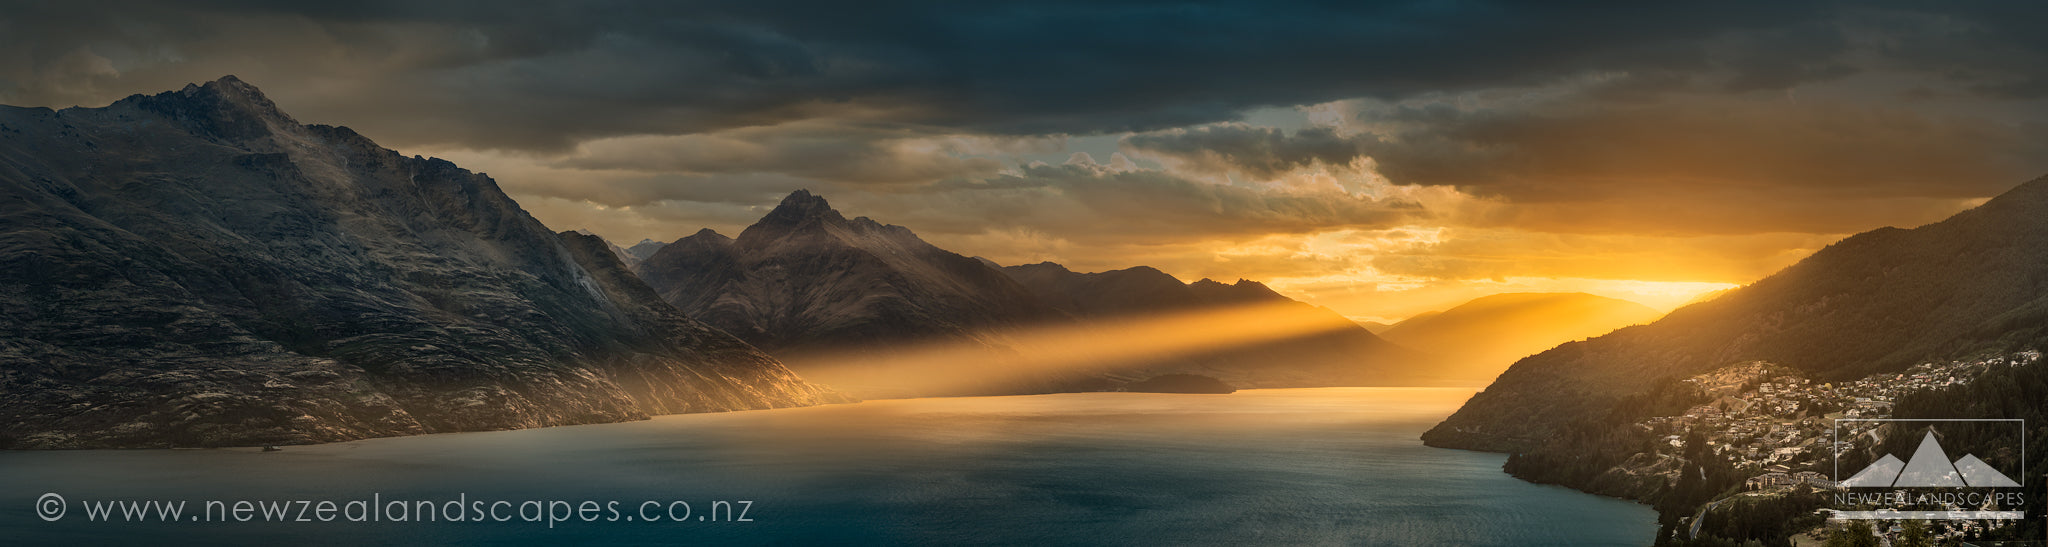 Contact us for more like this. Stunning sunset photo of Queenstown and Lake Wakatipu